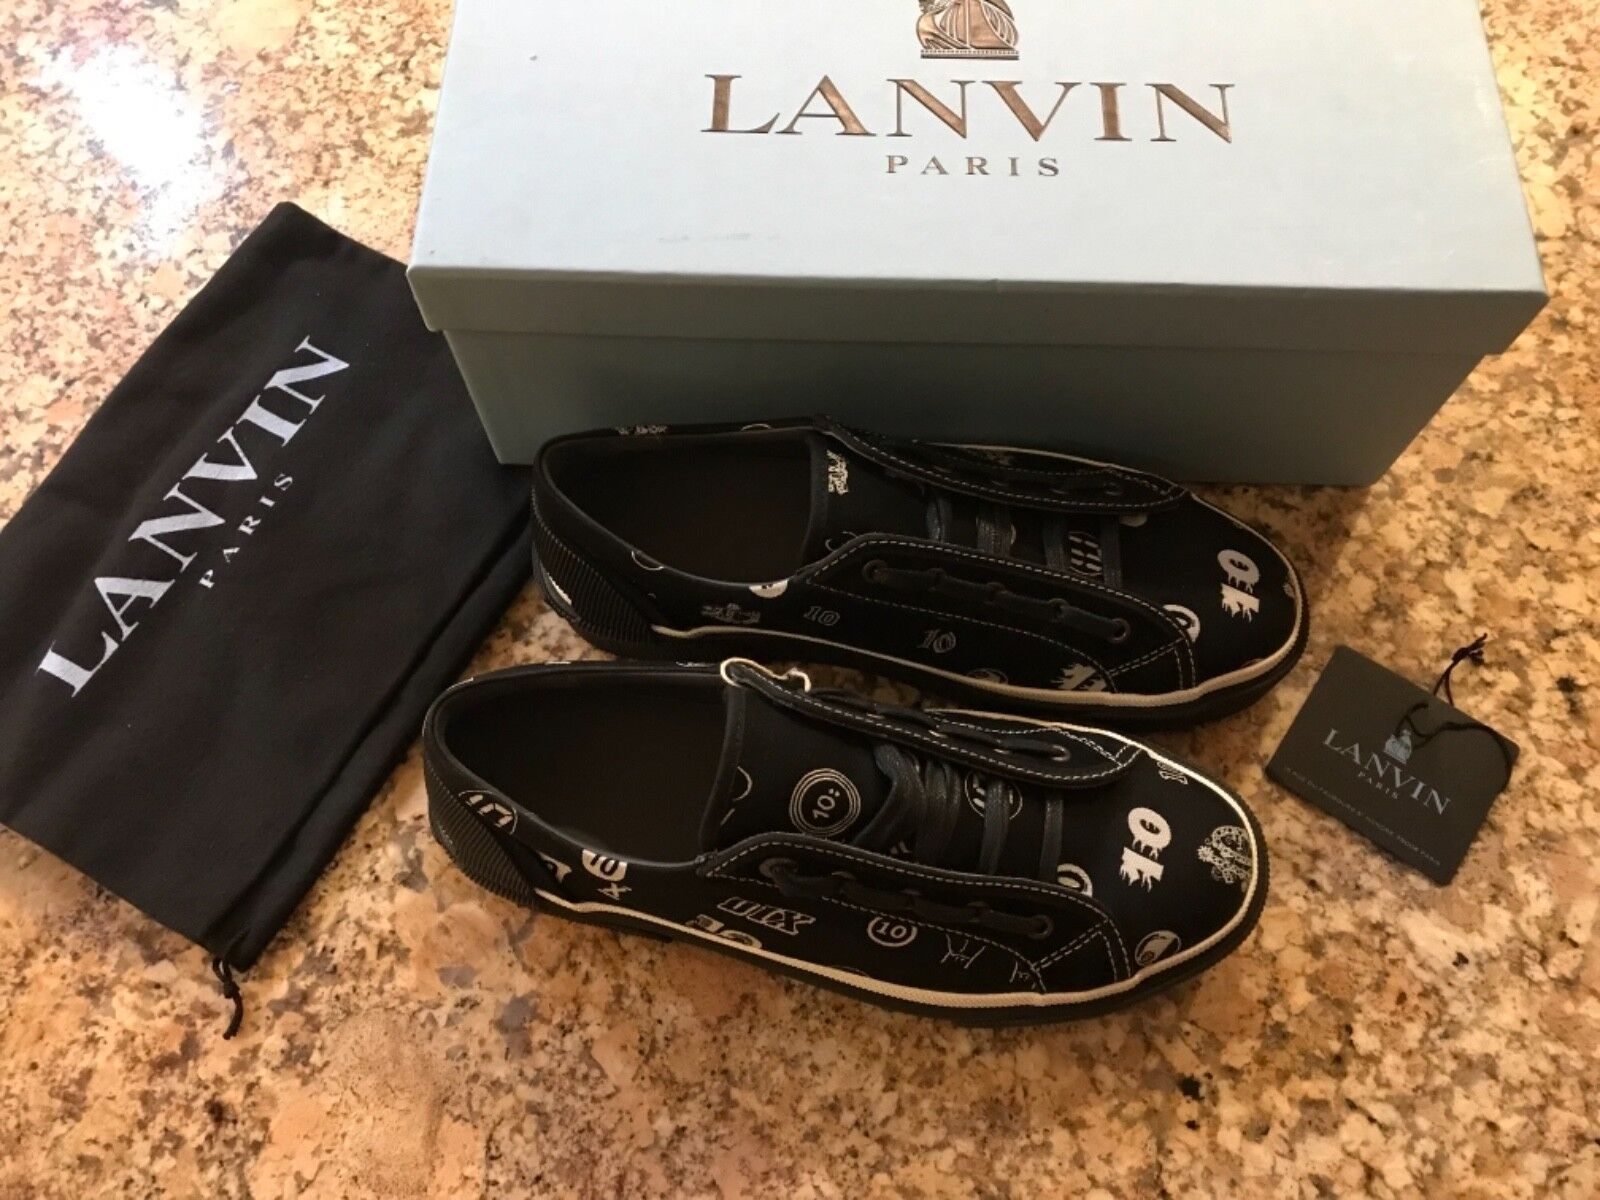 100% AUTHENTIC LANVIN TEN JACQUARD SNEAKERS, SIZE 8 US, MADE IN SPAIN